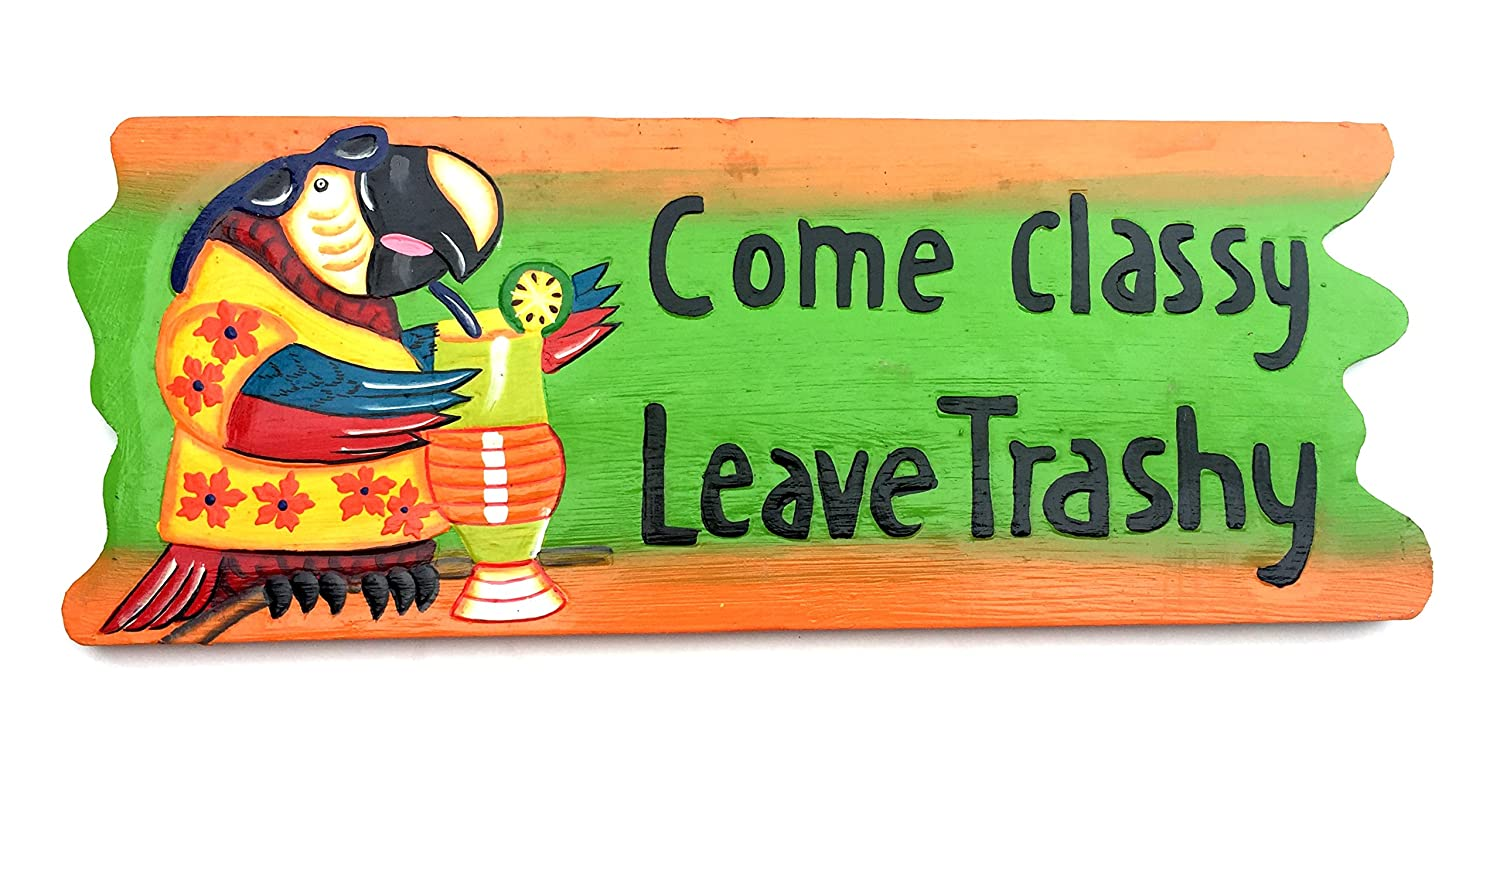 Wooden Red Parrot Come Classy Leave Trashy Happy Hour Tiki Bar Decor Funny Drinking Sign Wall Hanging Large Size